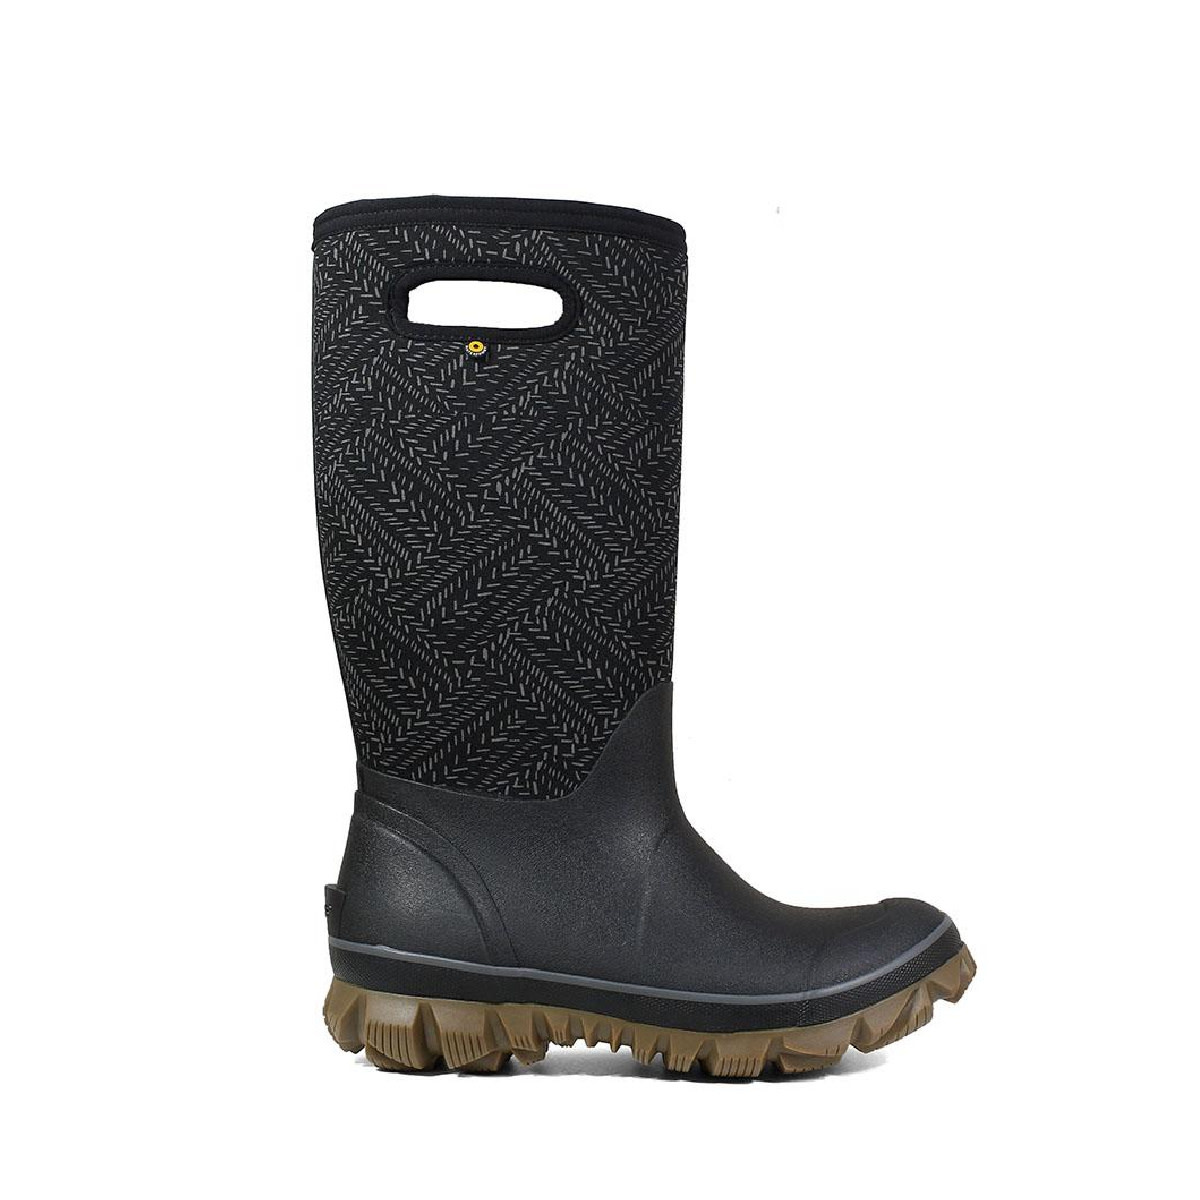 BOGS Women's Whiteout Fleck Black